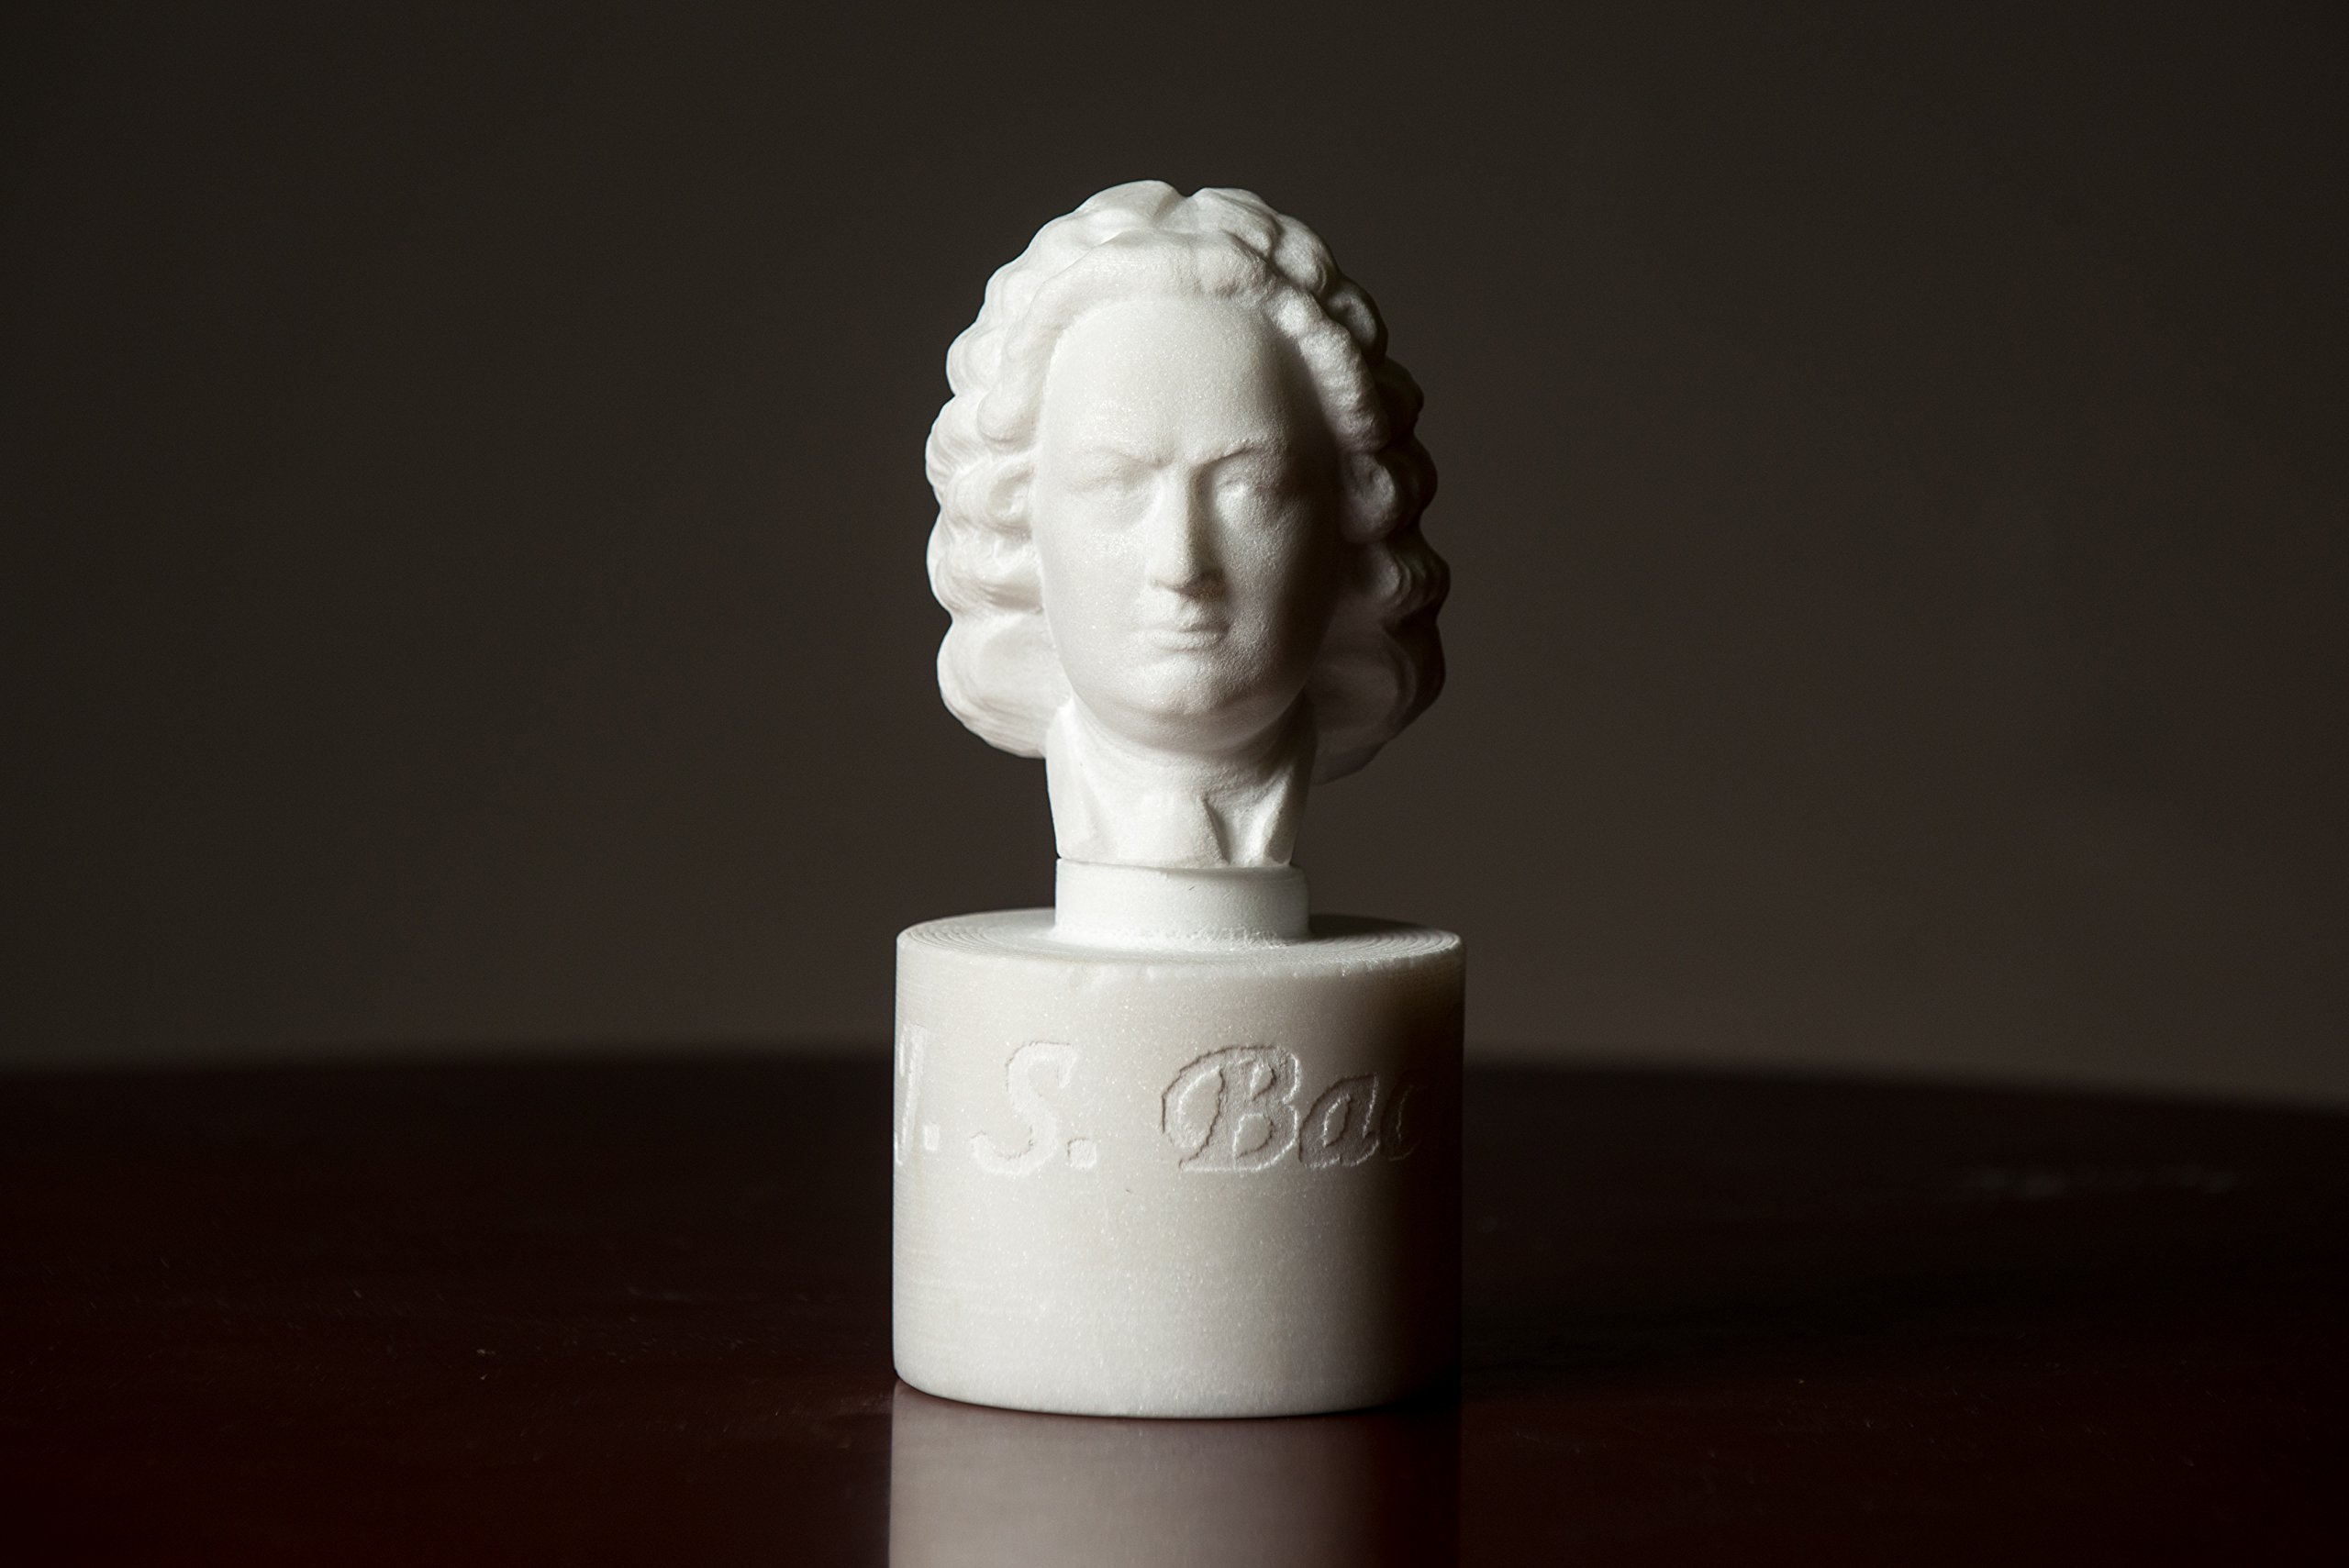 Marble Bust of J. S. Bach Carved Greek Marble Statue Figurine Artist Sculpture by Greek Marble Art